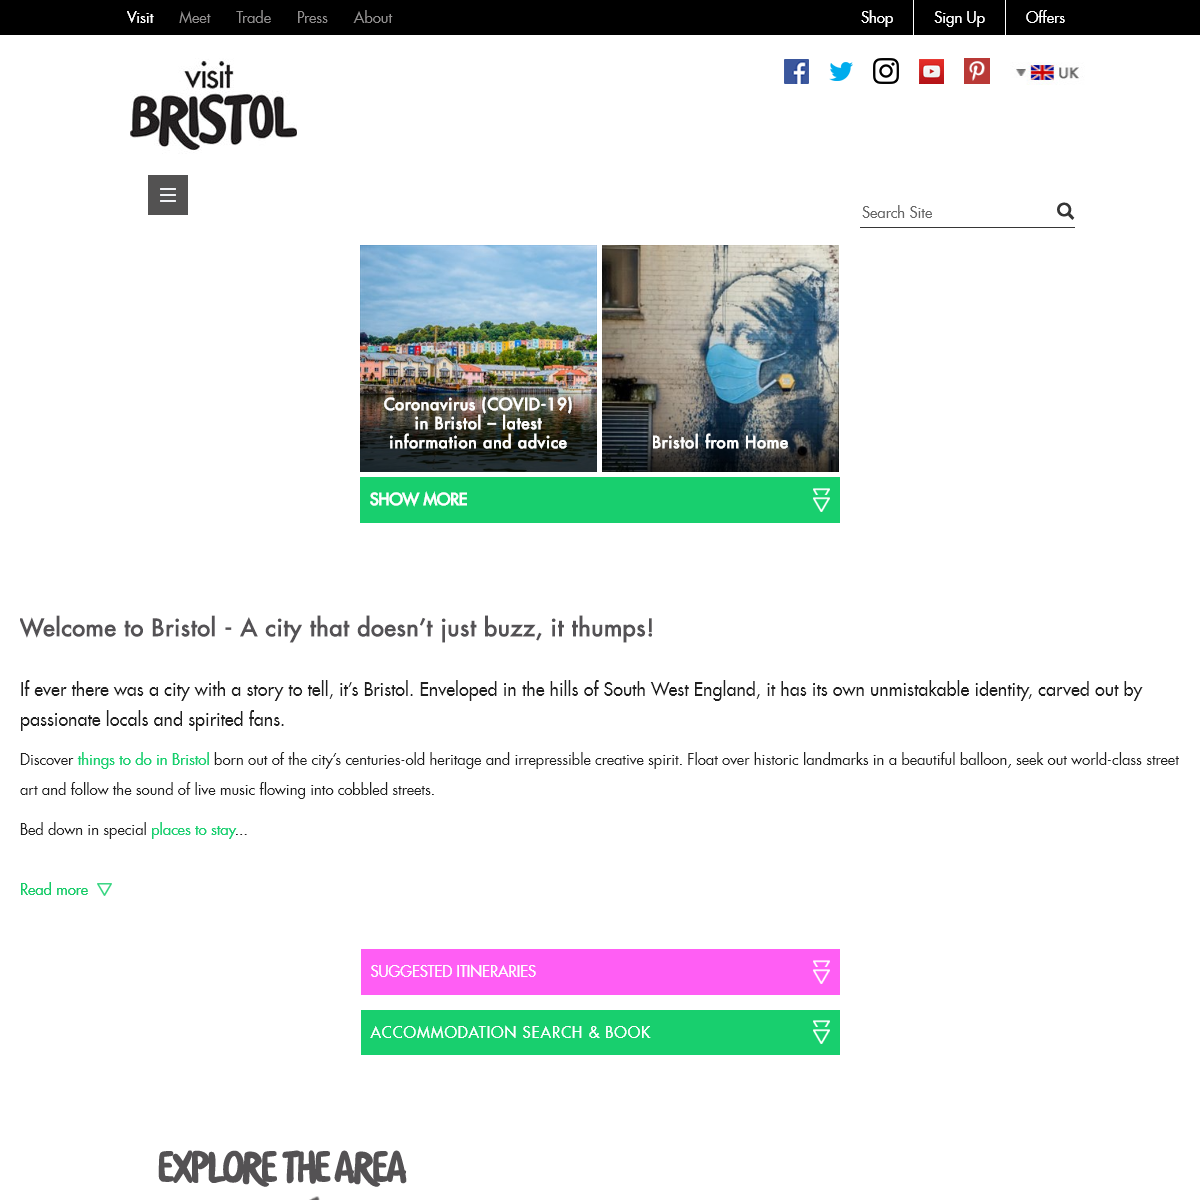 Visit Bristol - Official Bristol Tourist Information Site